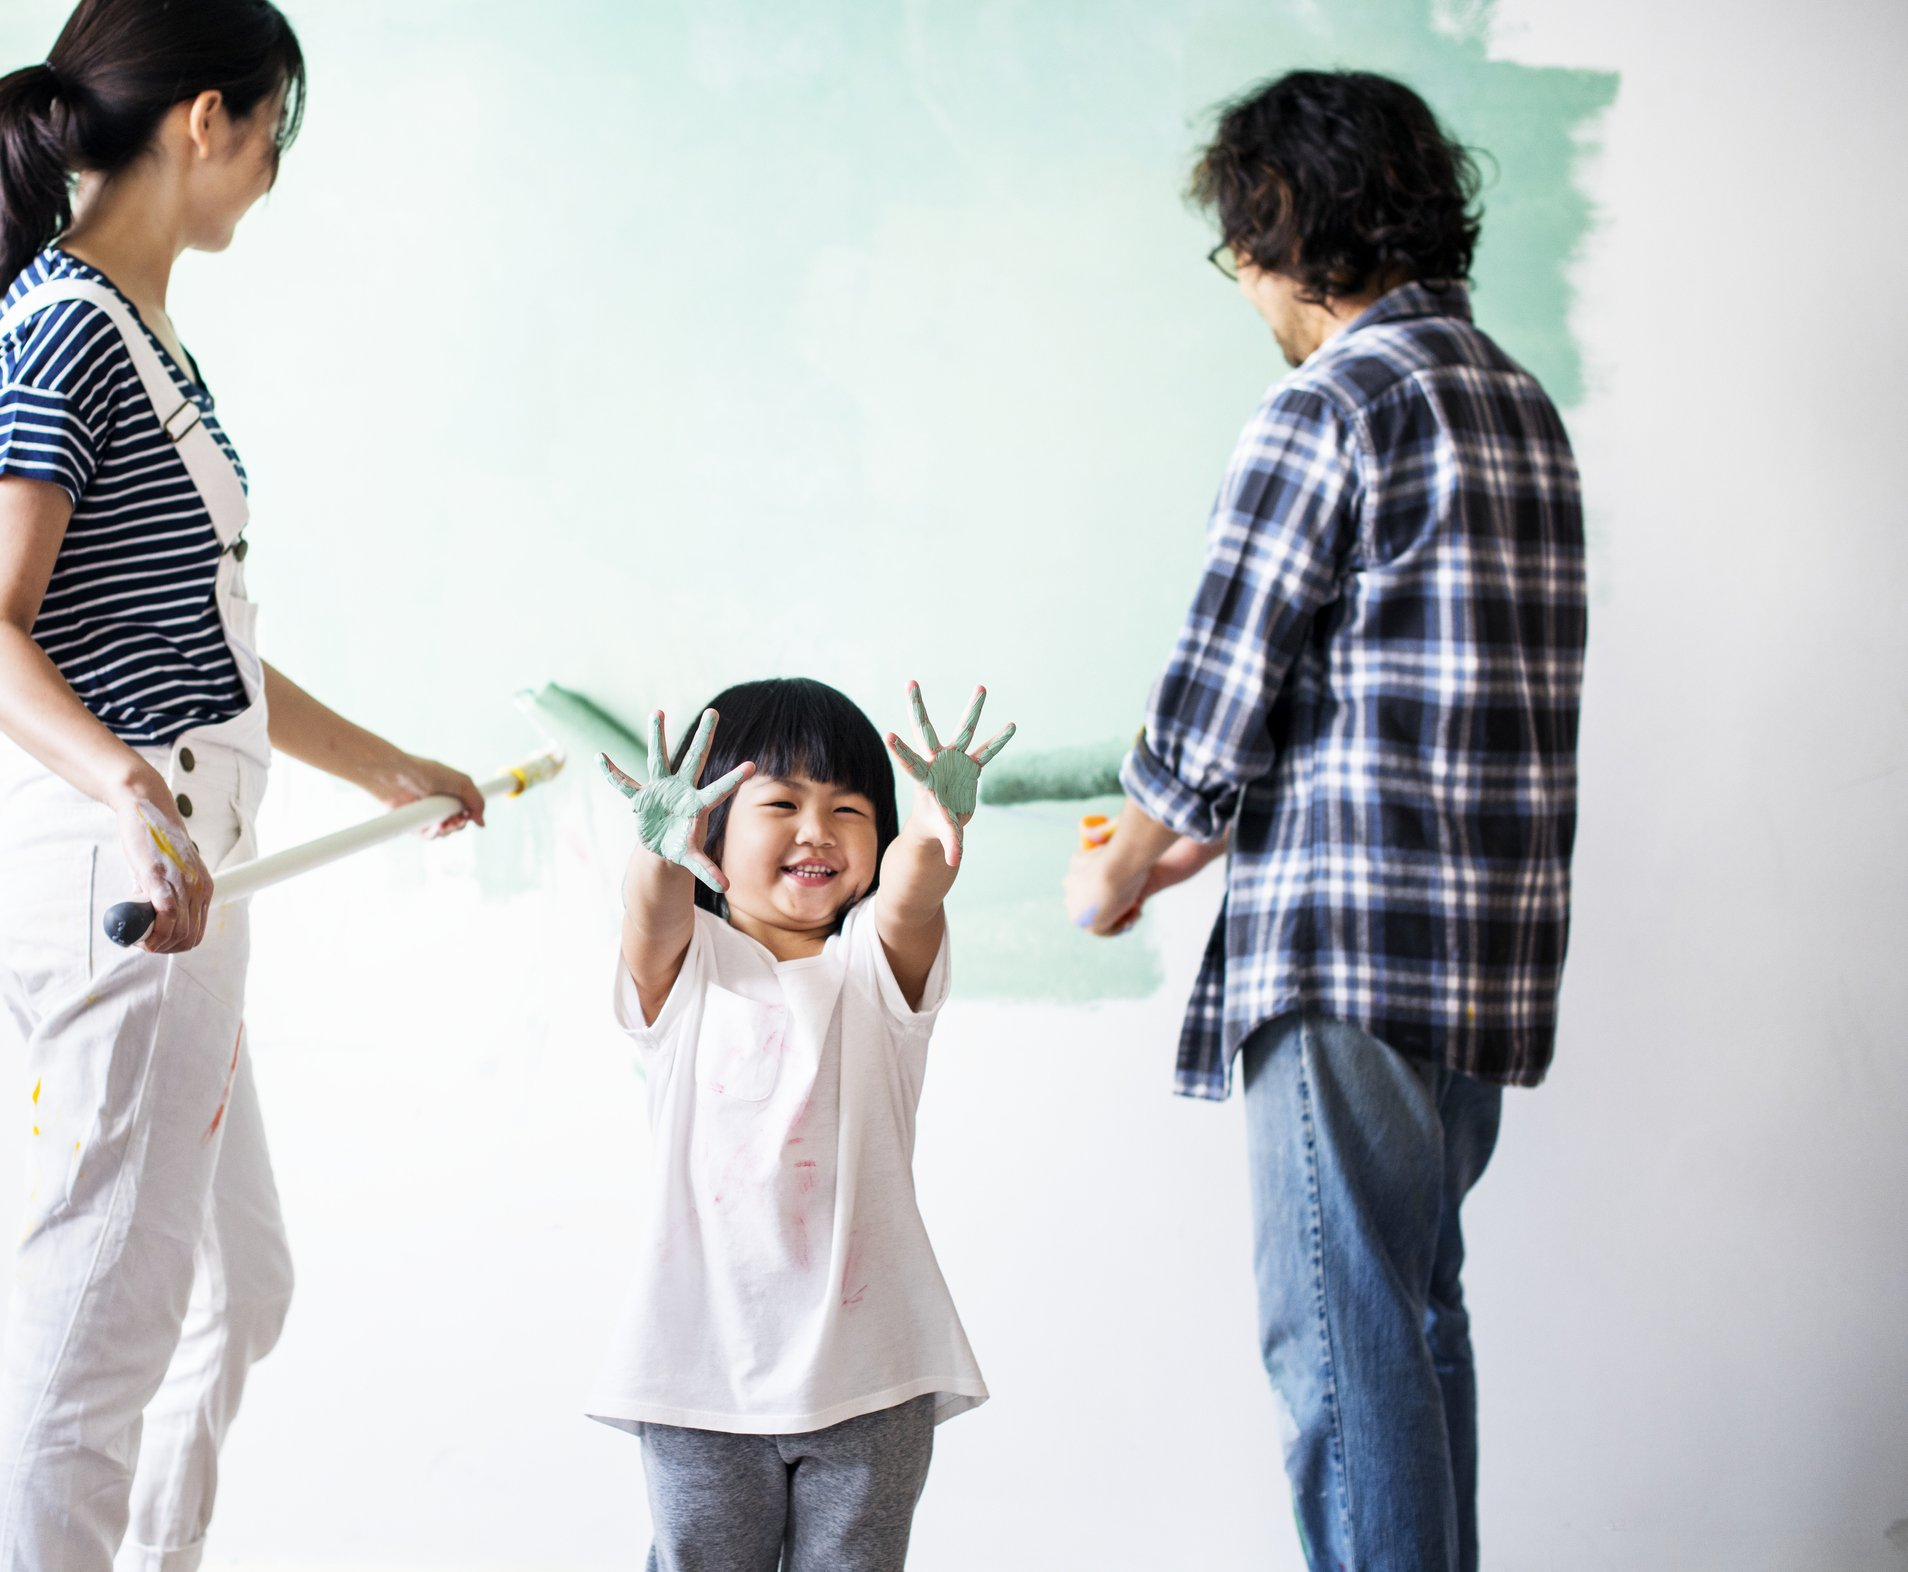 Child holding up hands with green paint, while parents paint the wall